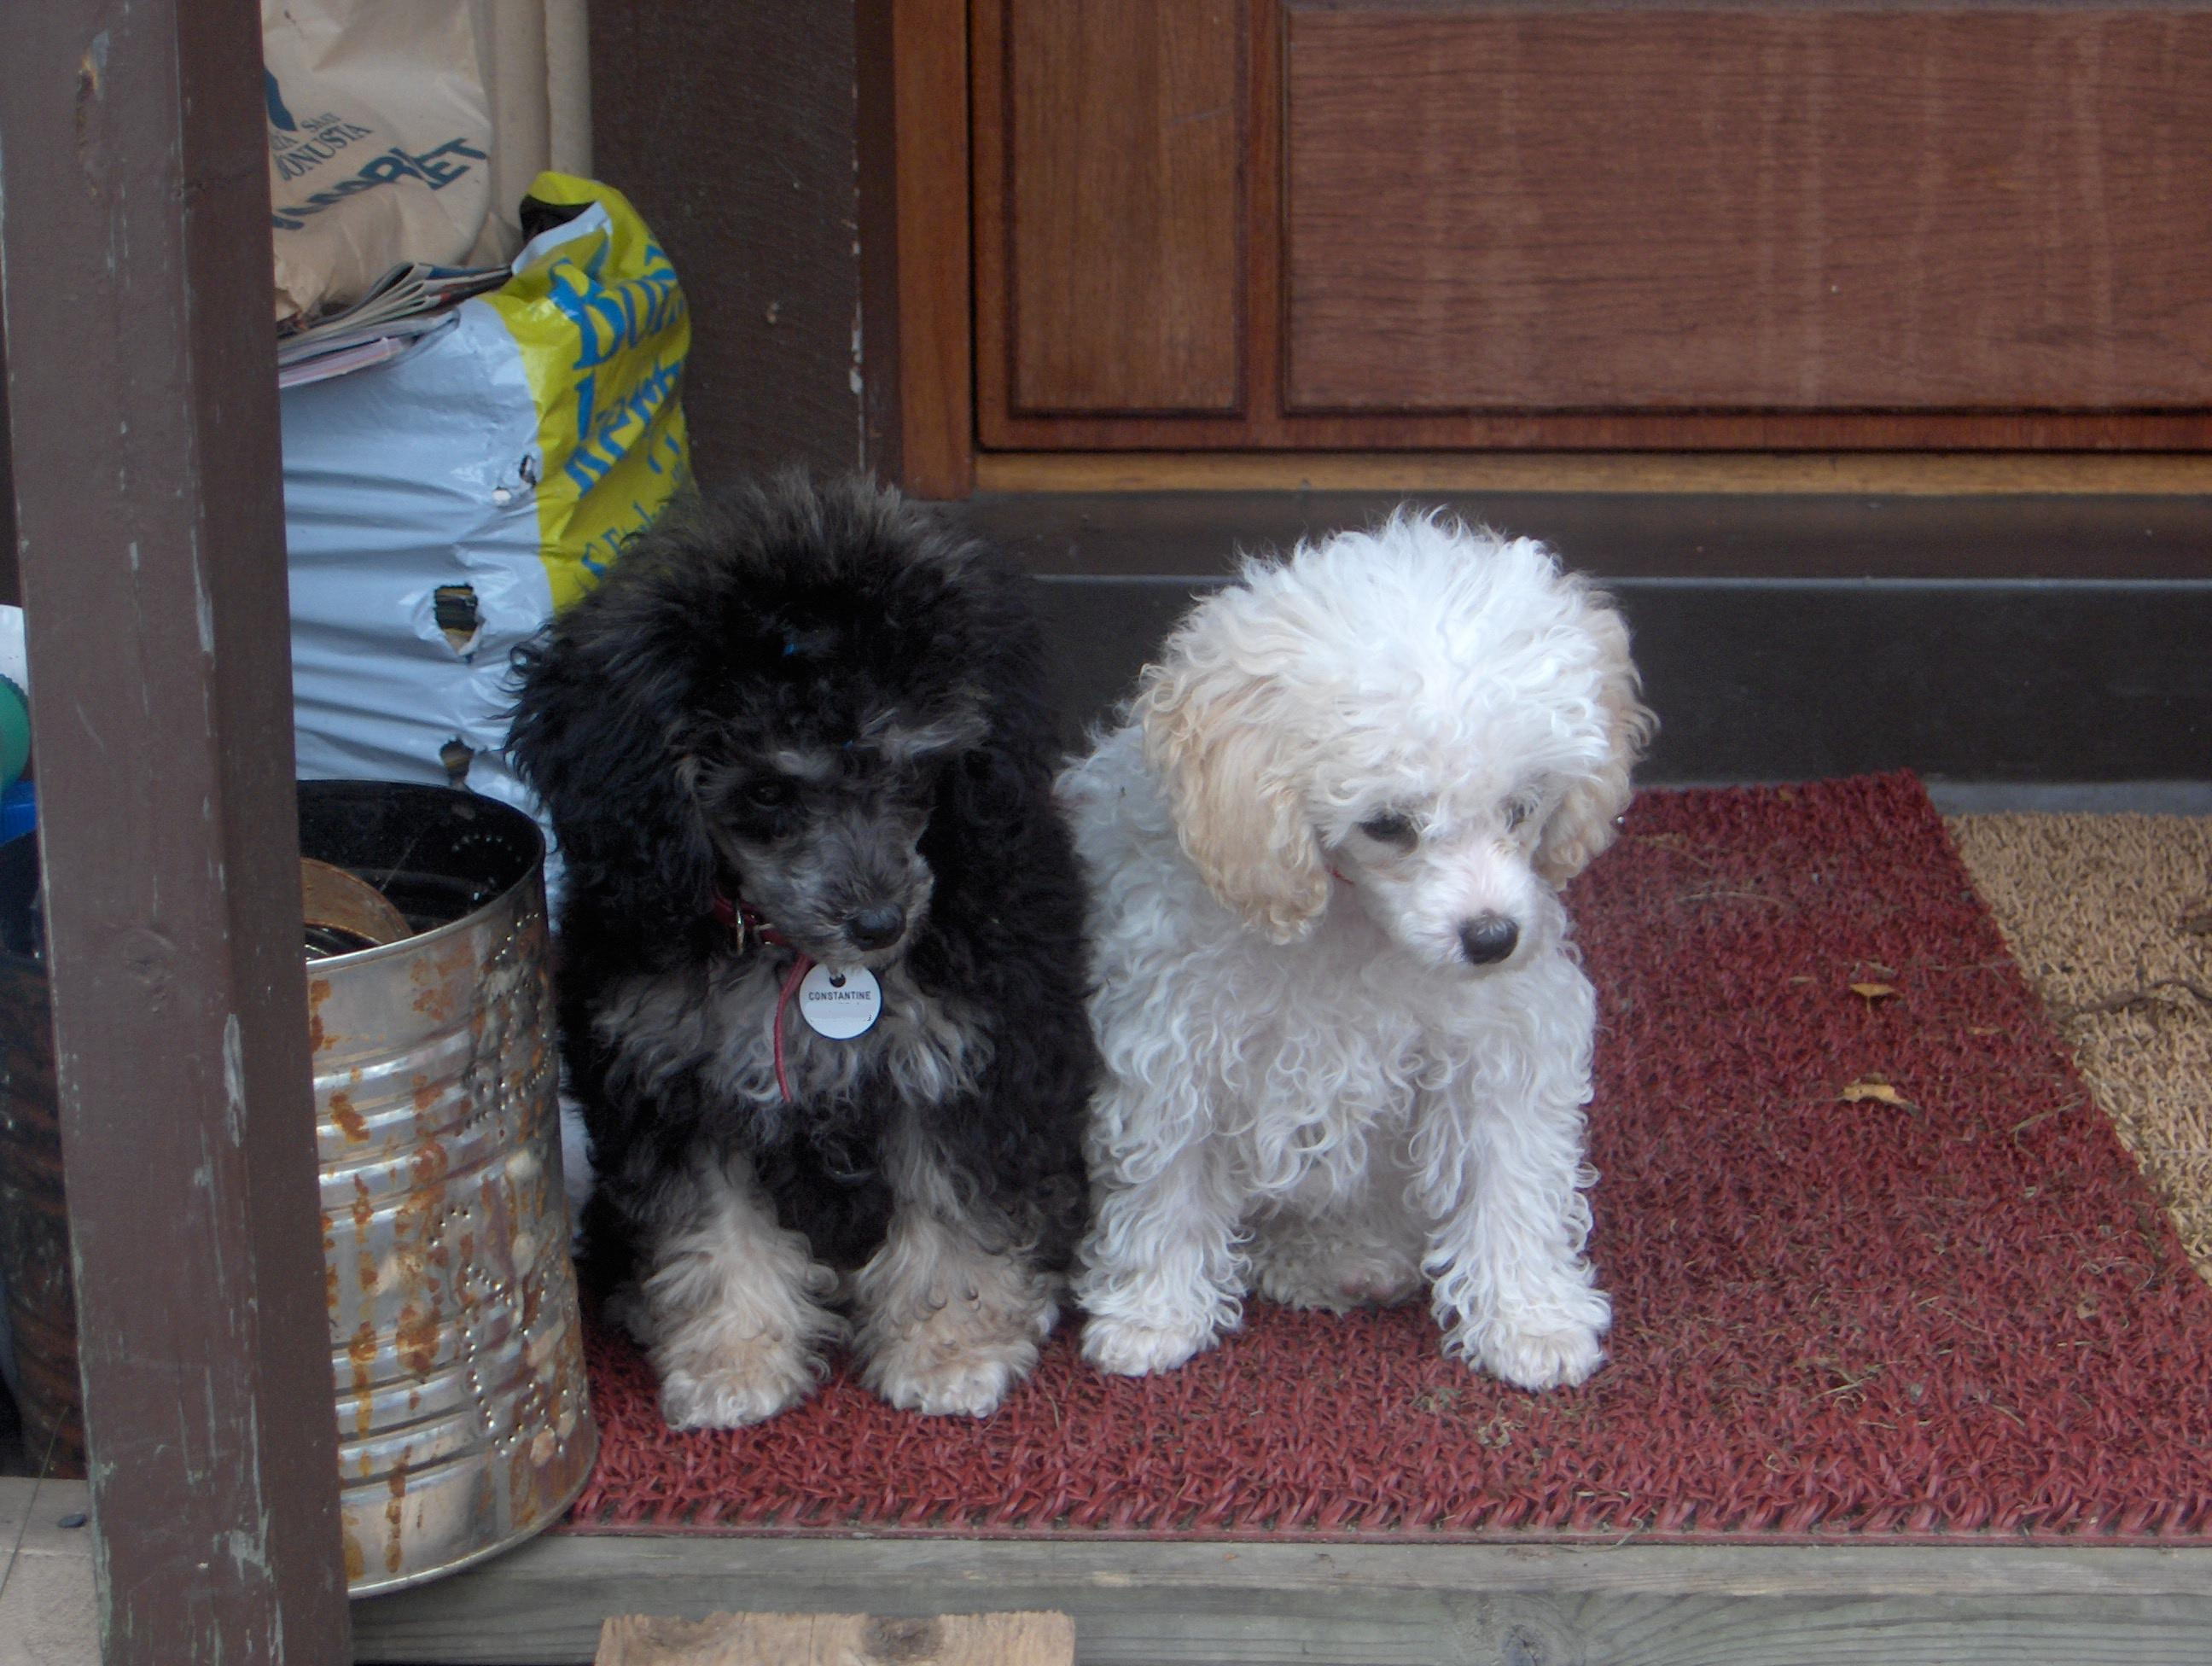 Description Toy 'parti' poodle puppies - 1.JPG